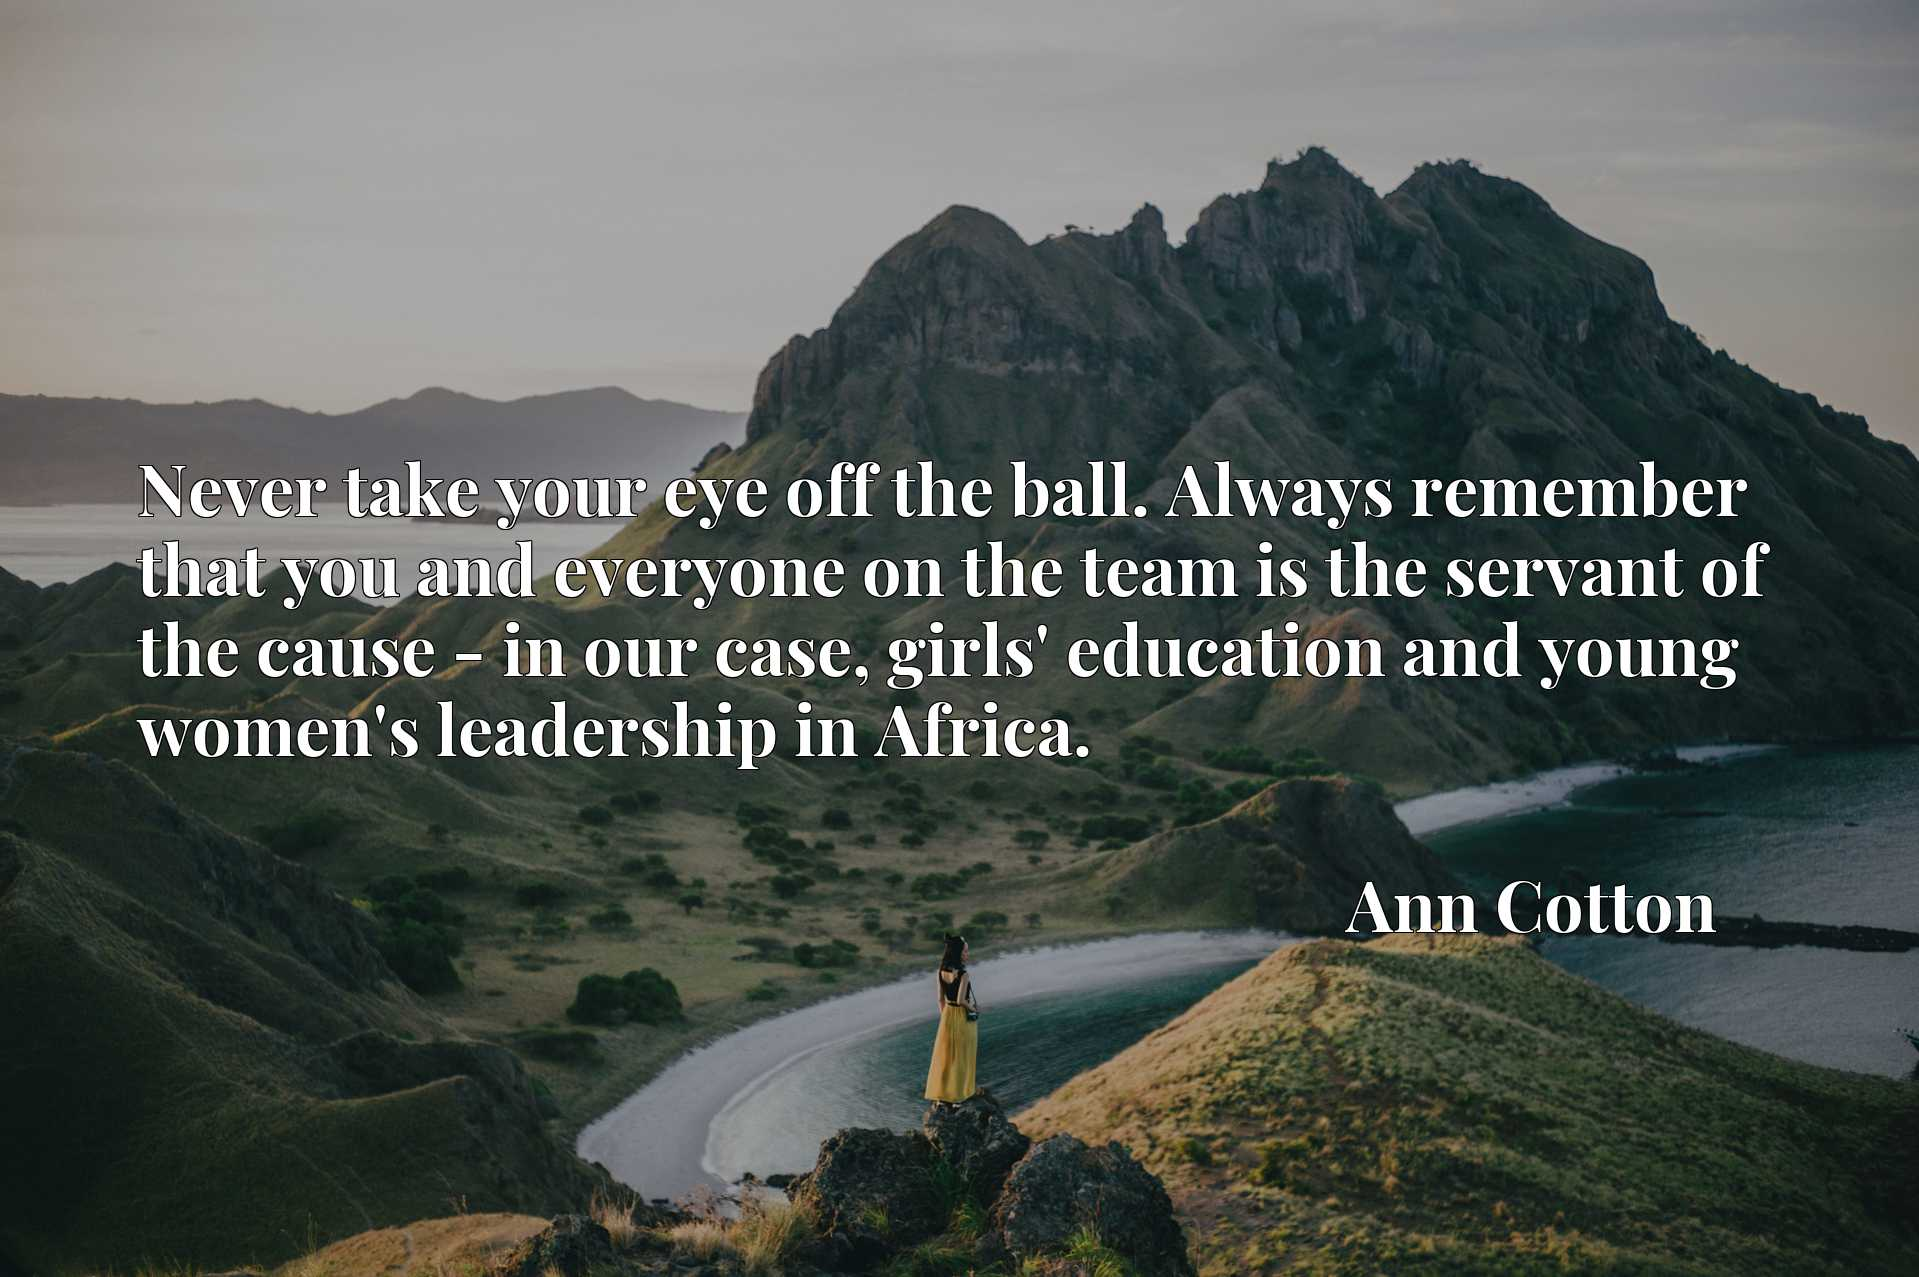 Quote Picture :Never take your eye off the ball. Always remember that you and everyone on the team is the servant of the cause - in our case, girls' education and young women's leadership in Africa.